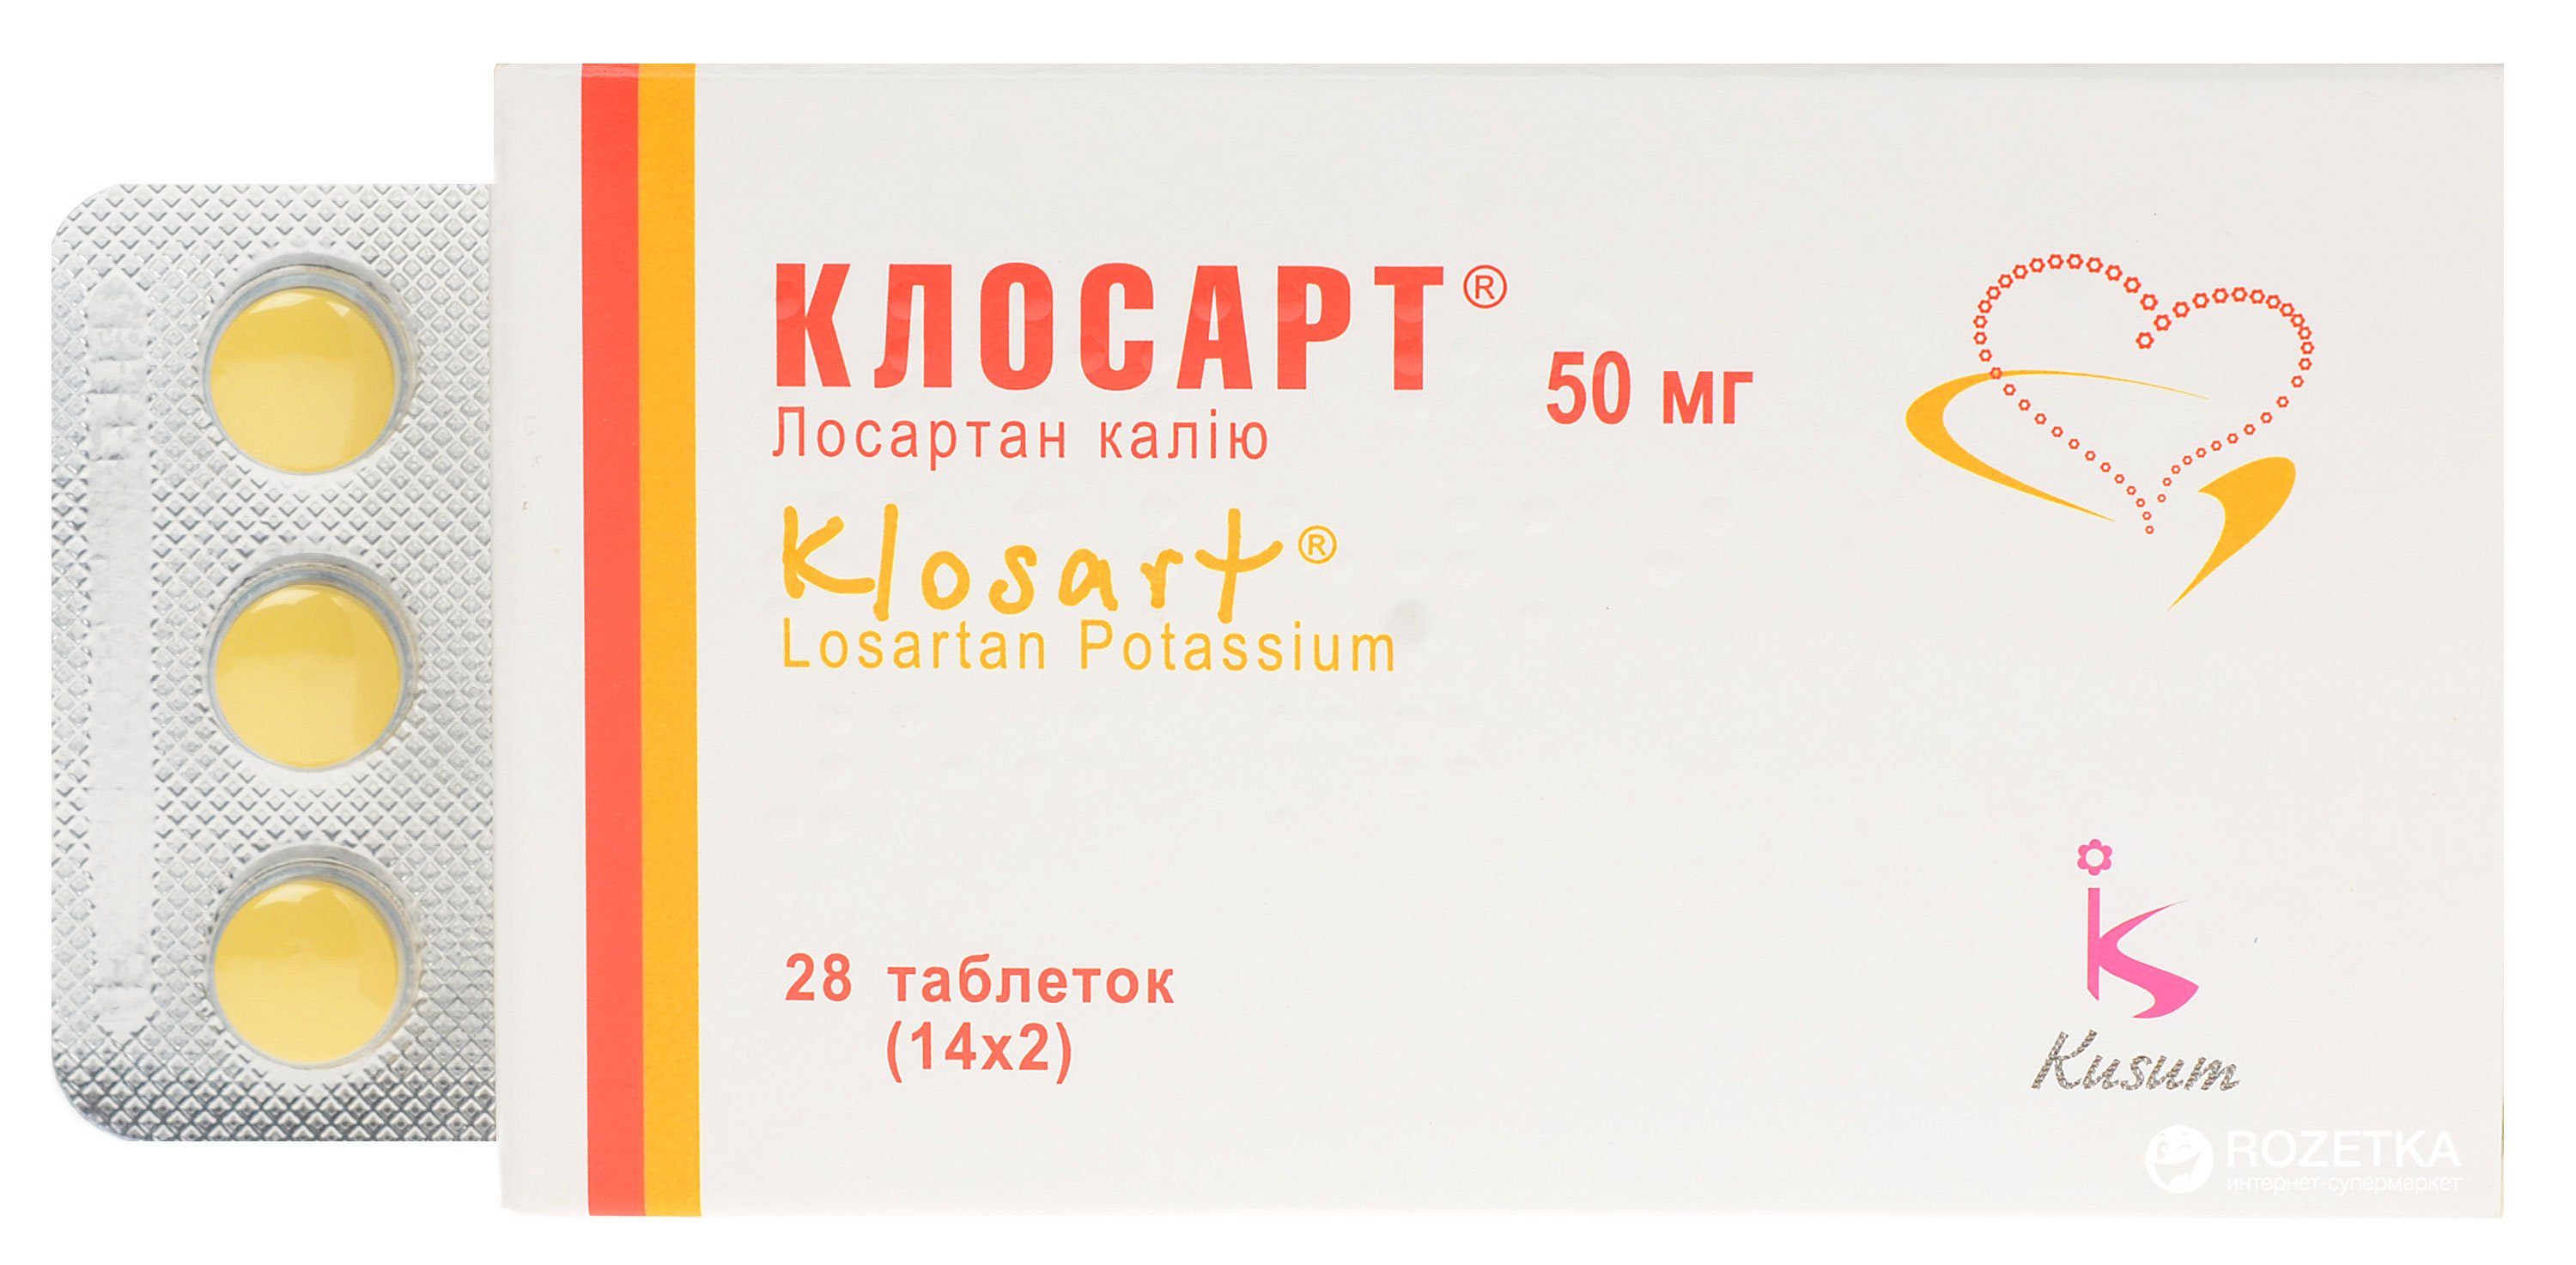 Closart (losartan) coated tablets 50 mg. №28